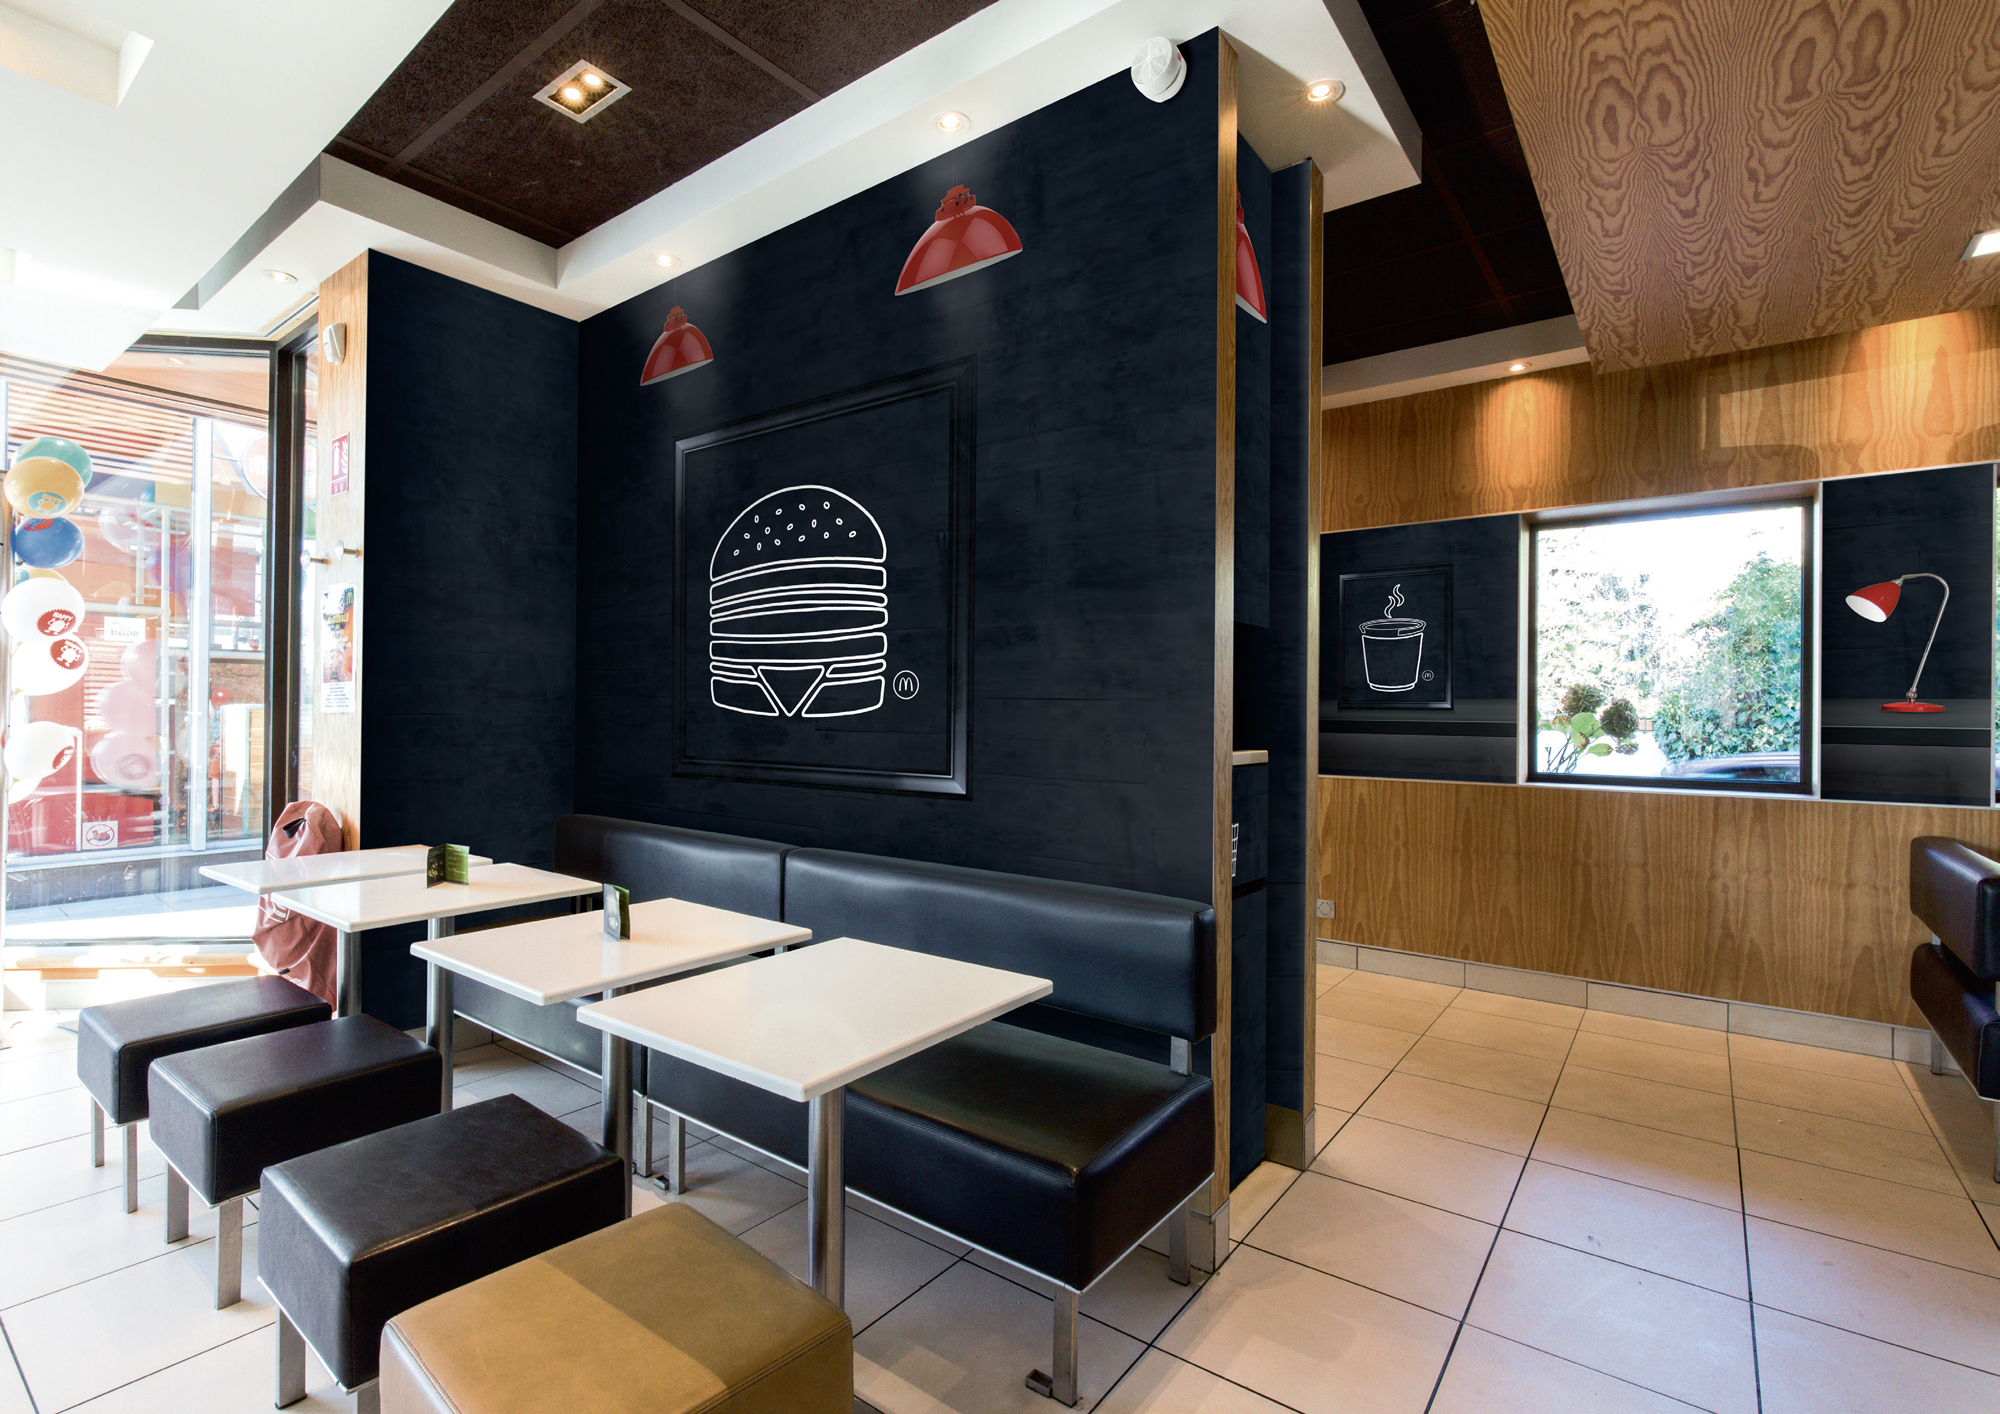 decoration restaurant mc donald's par picture design